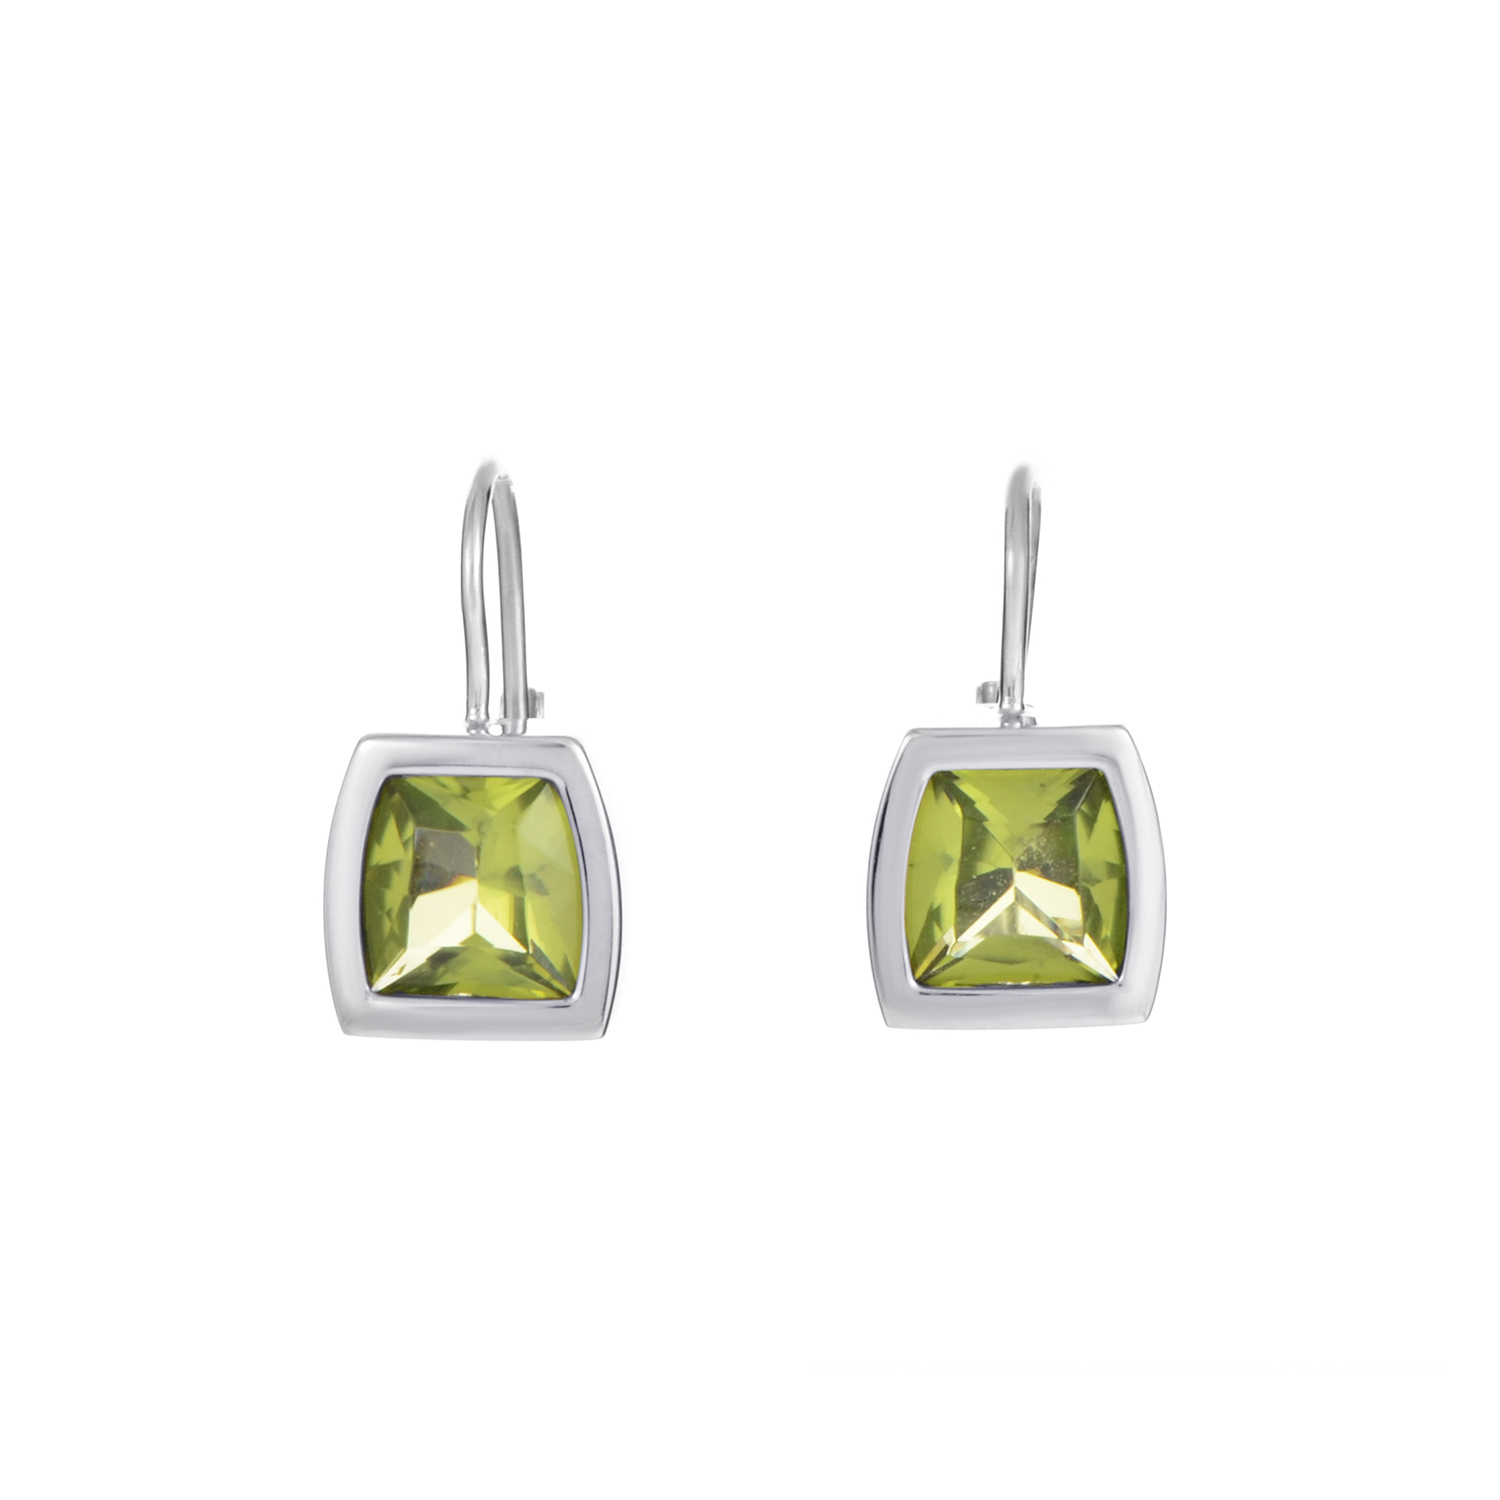 La Dona 18K White Gold Peridot Earrings